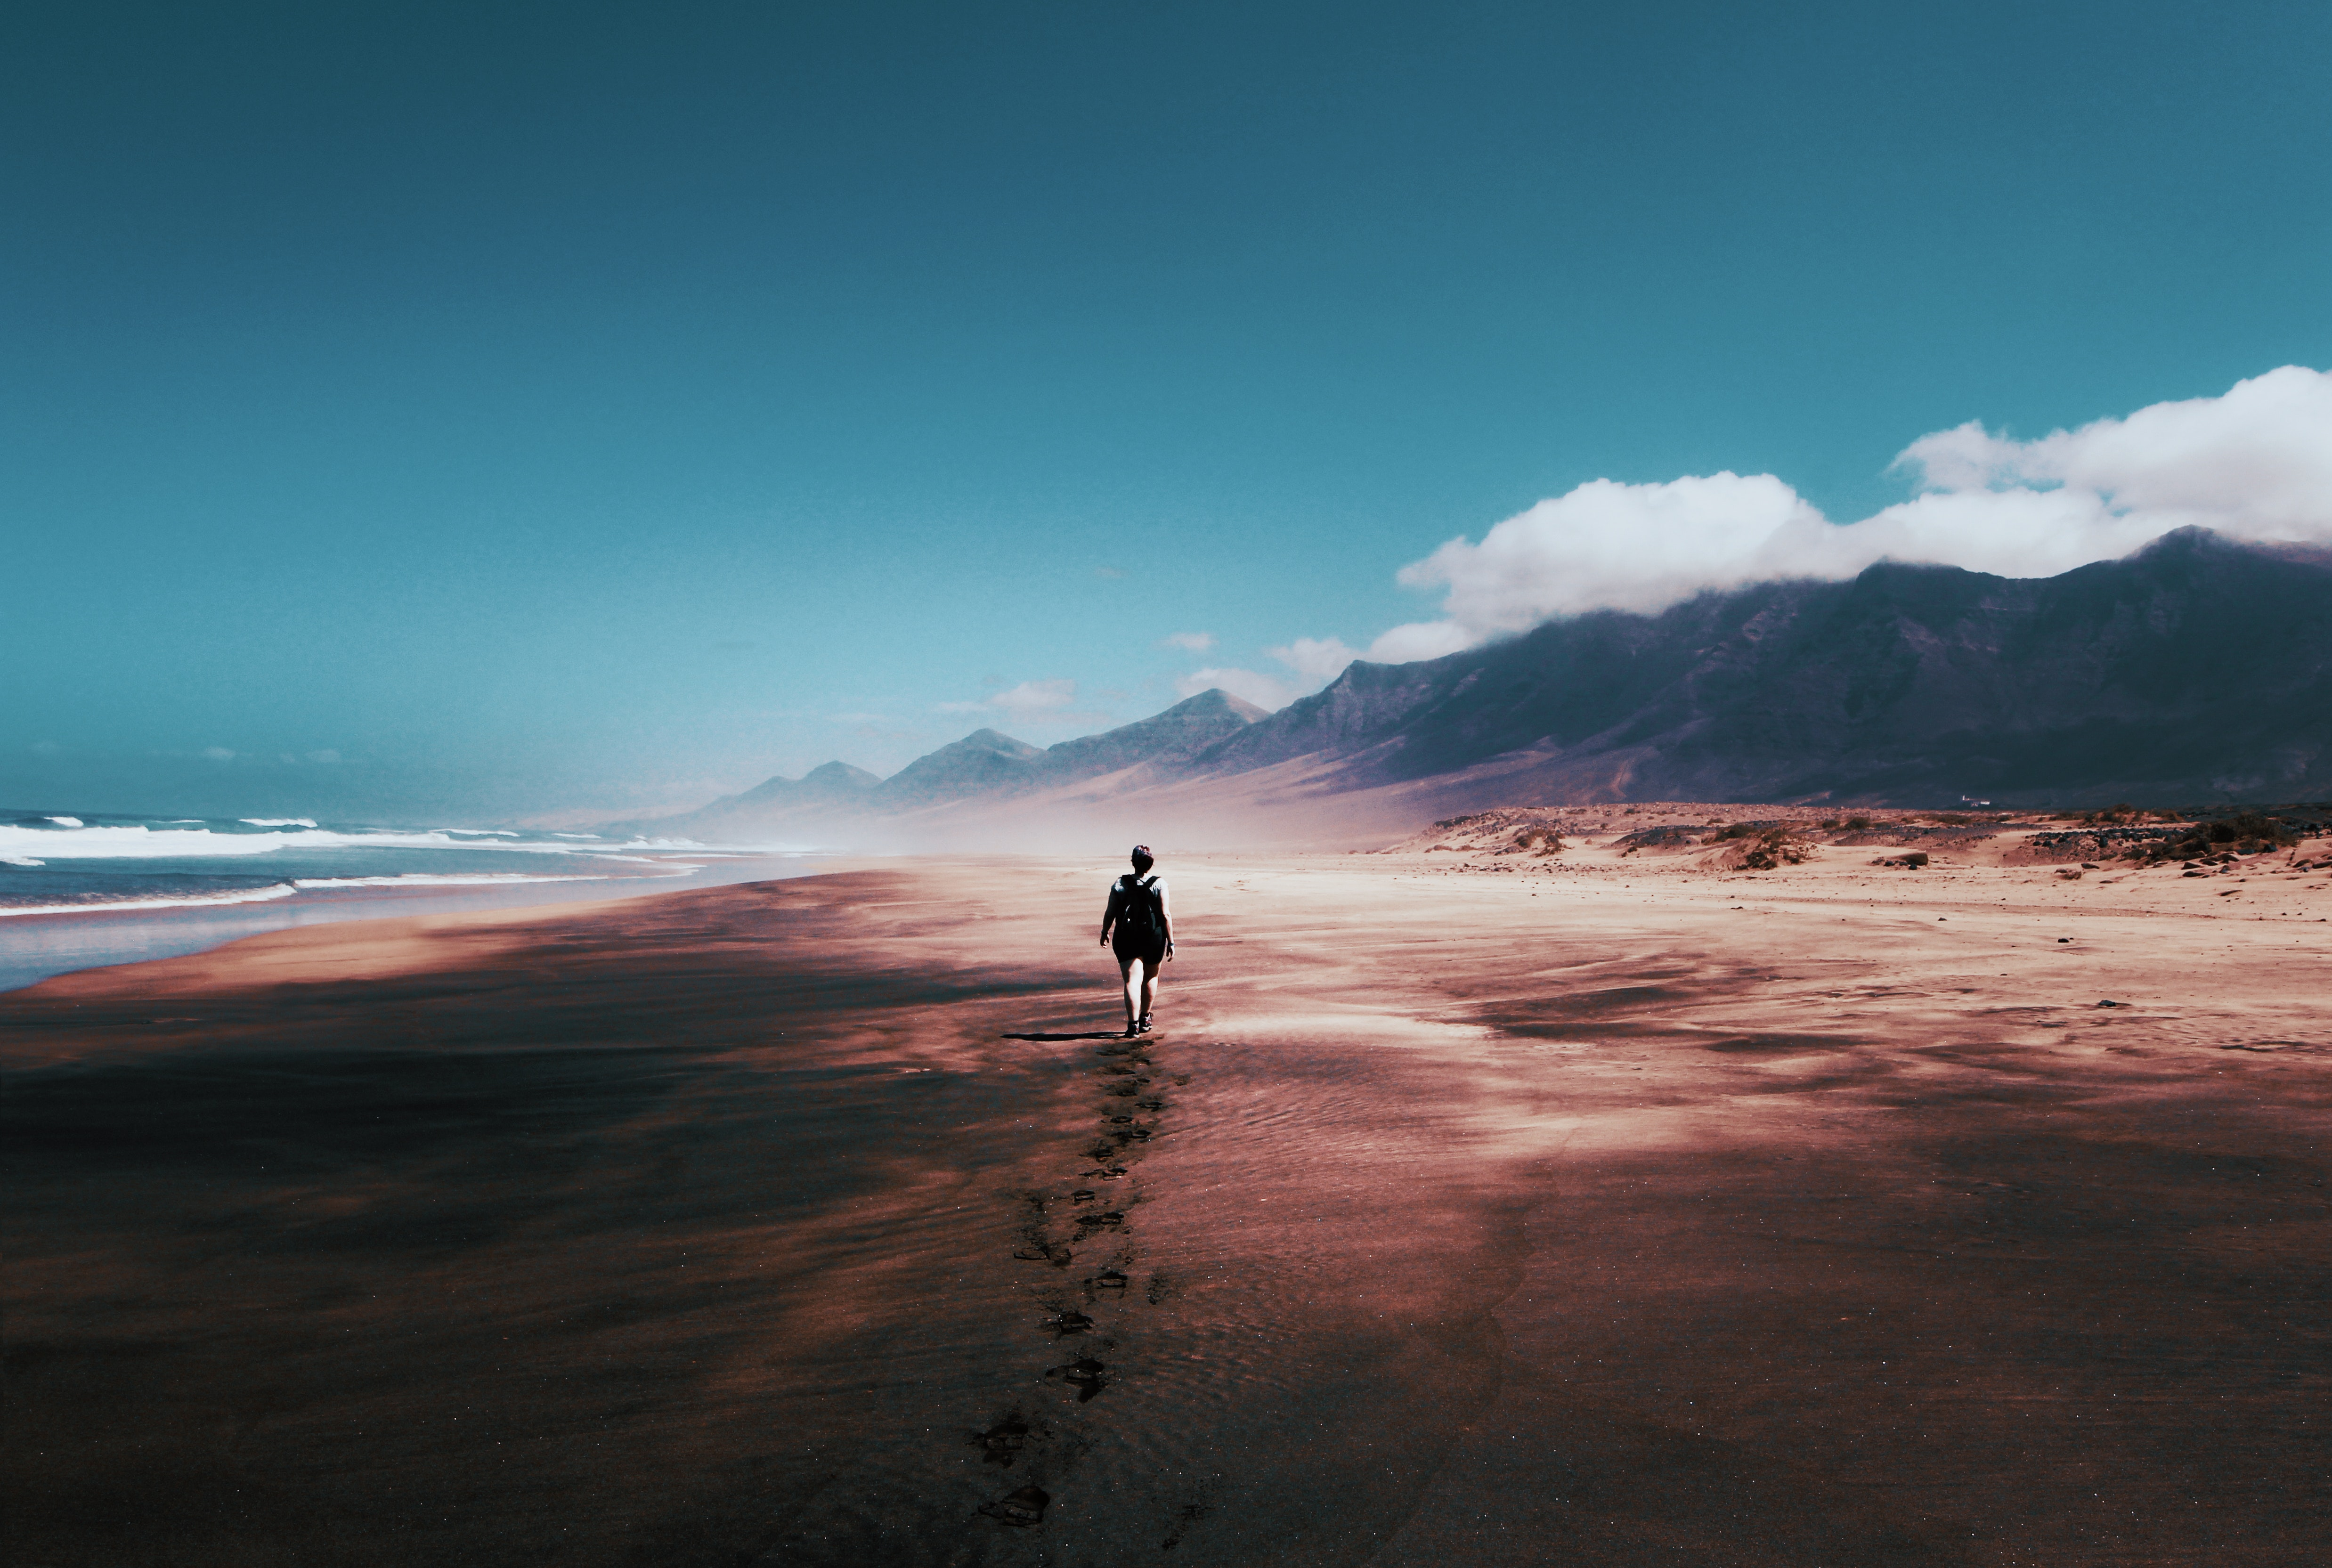 A person walks on a wide beach expanse